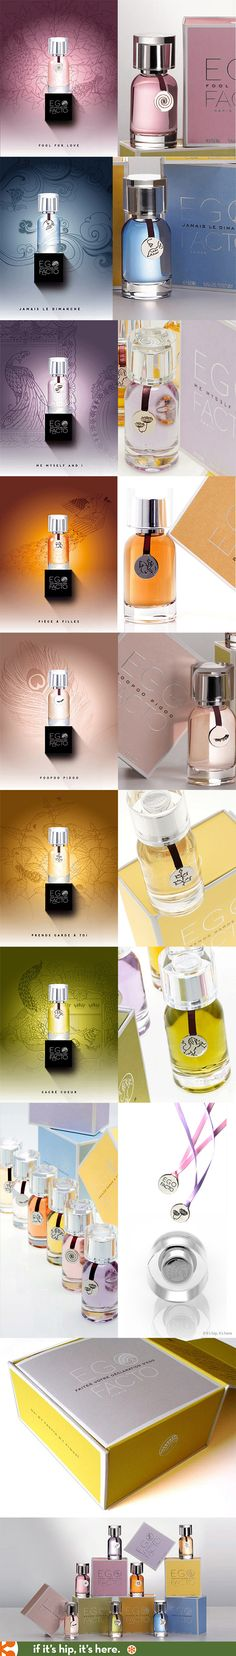 Ego Facto perfume packaging includes caps carved of crystal and engraved metal pendants on ribbons.